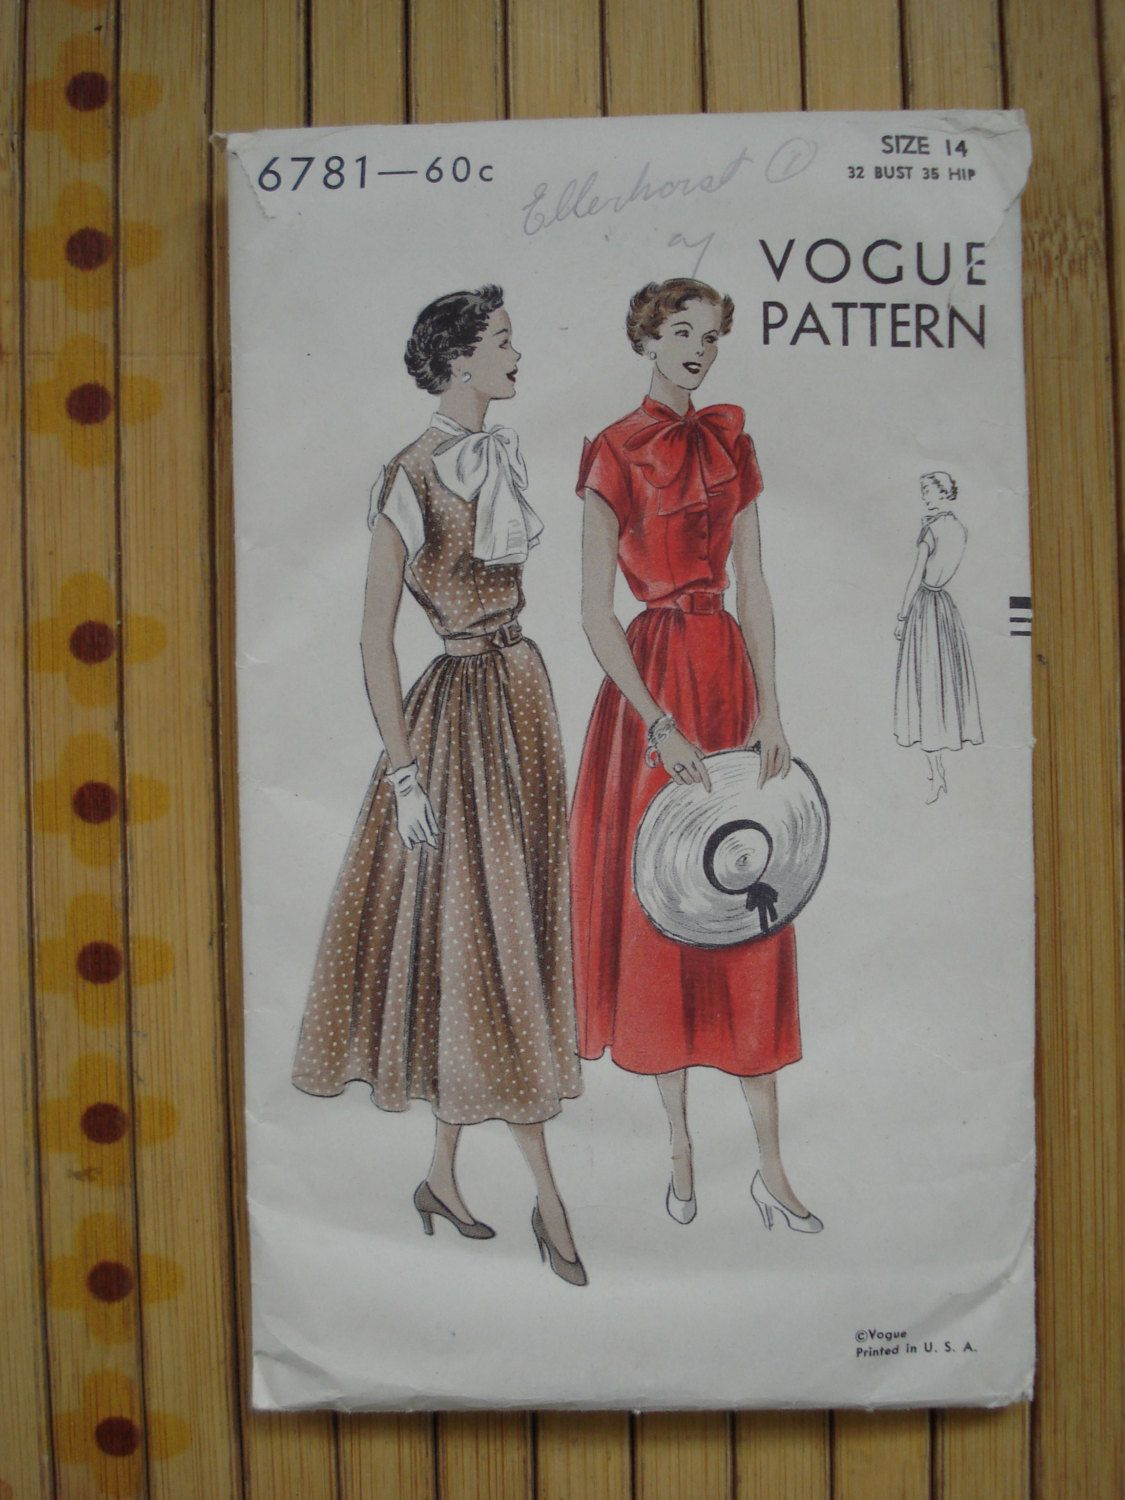 Vintage 1940s Vogue Pattern Vogue 6781 Dress Sewing от bycinbyhand